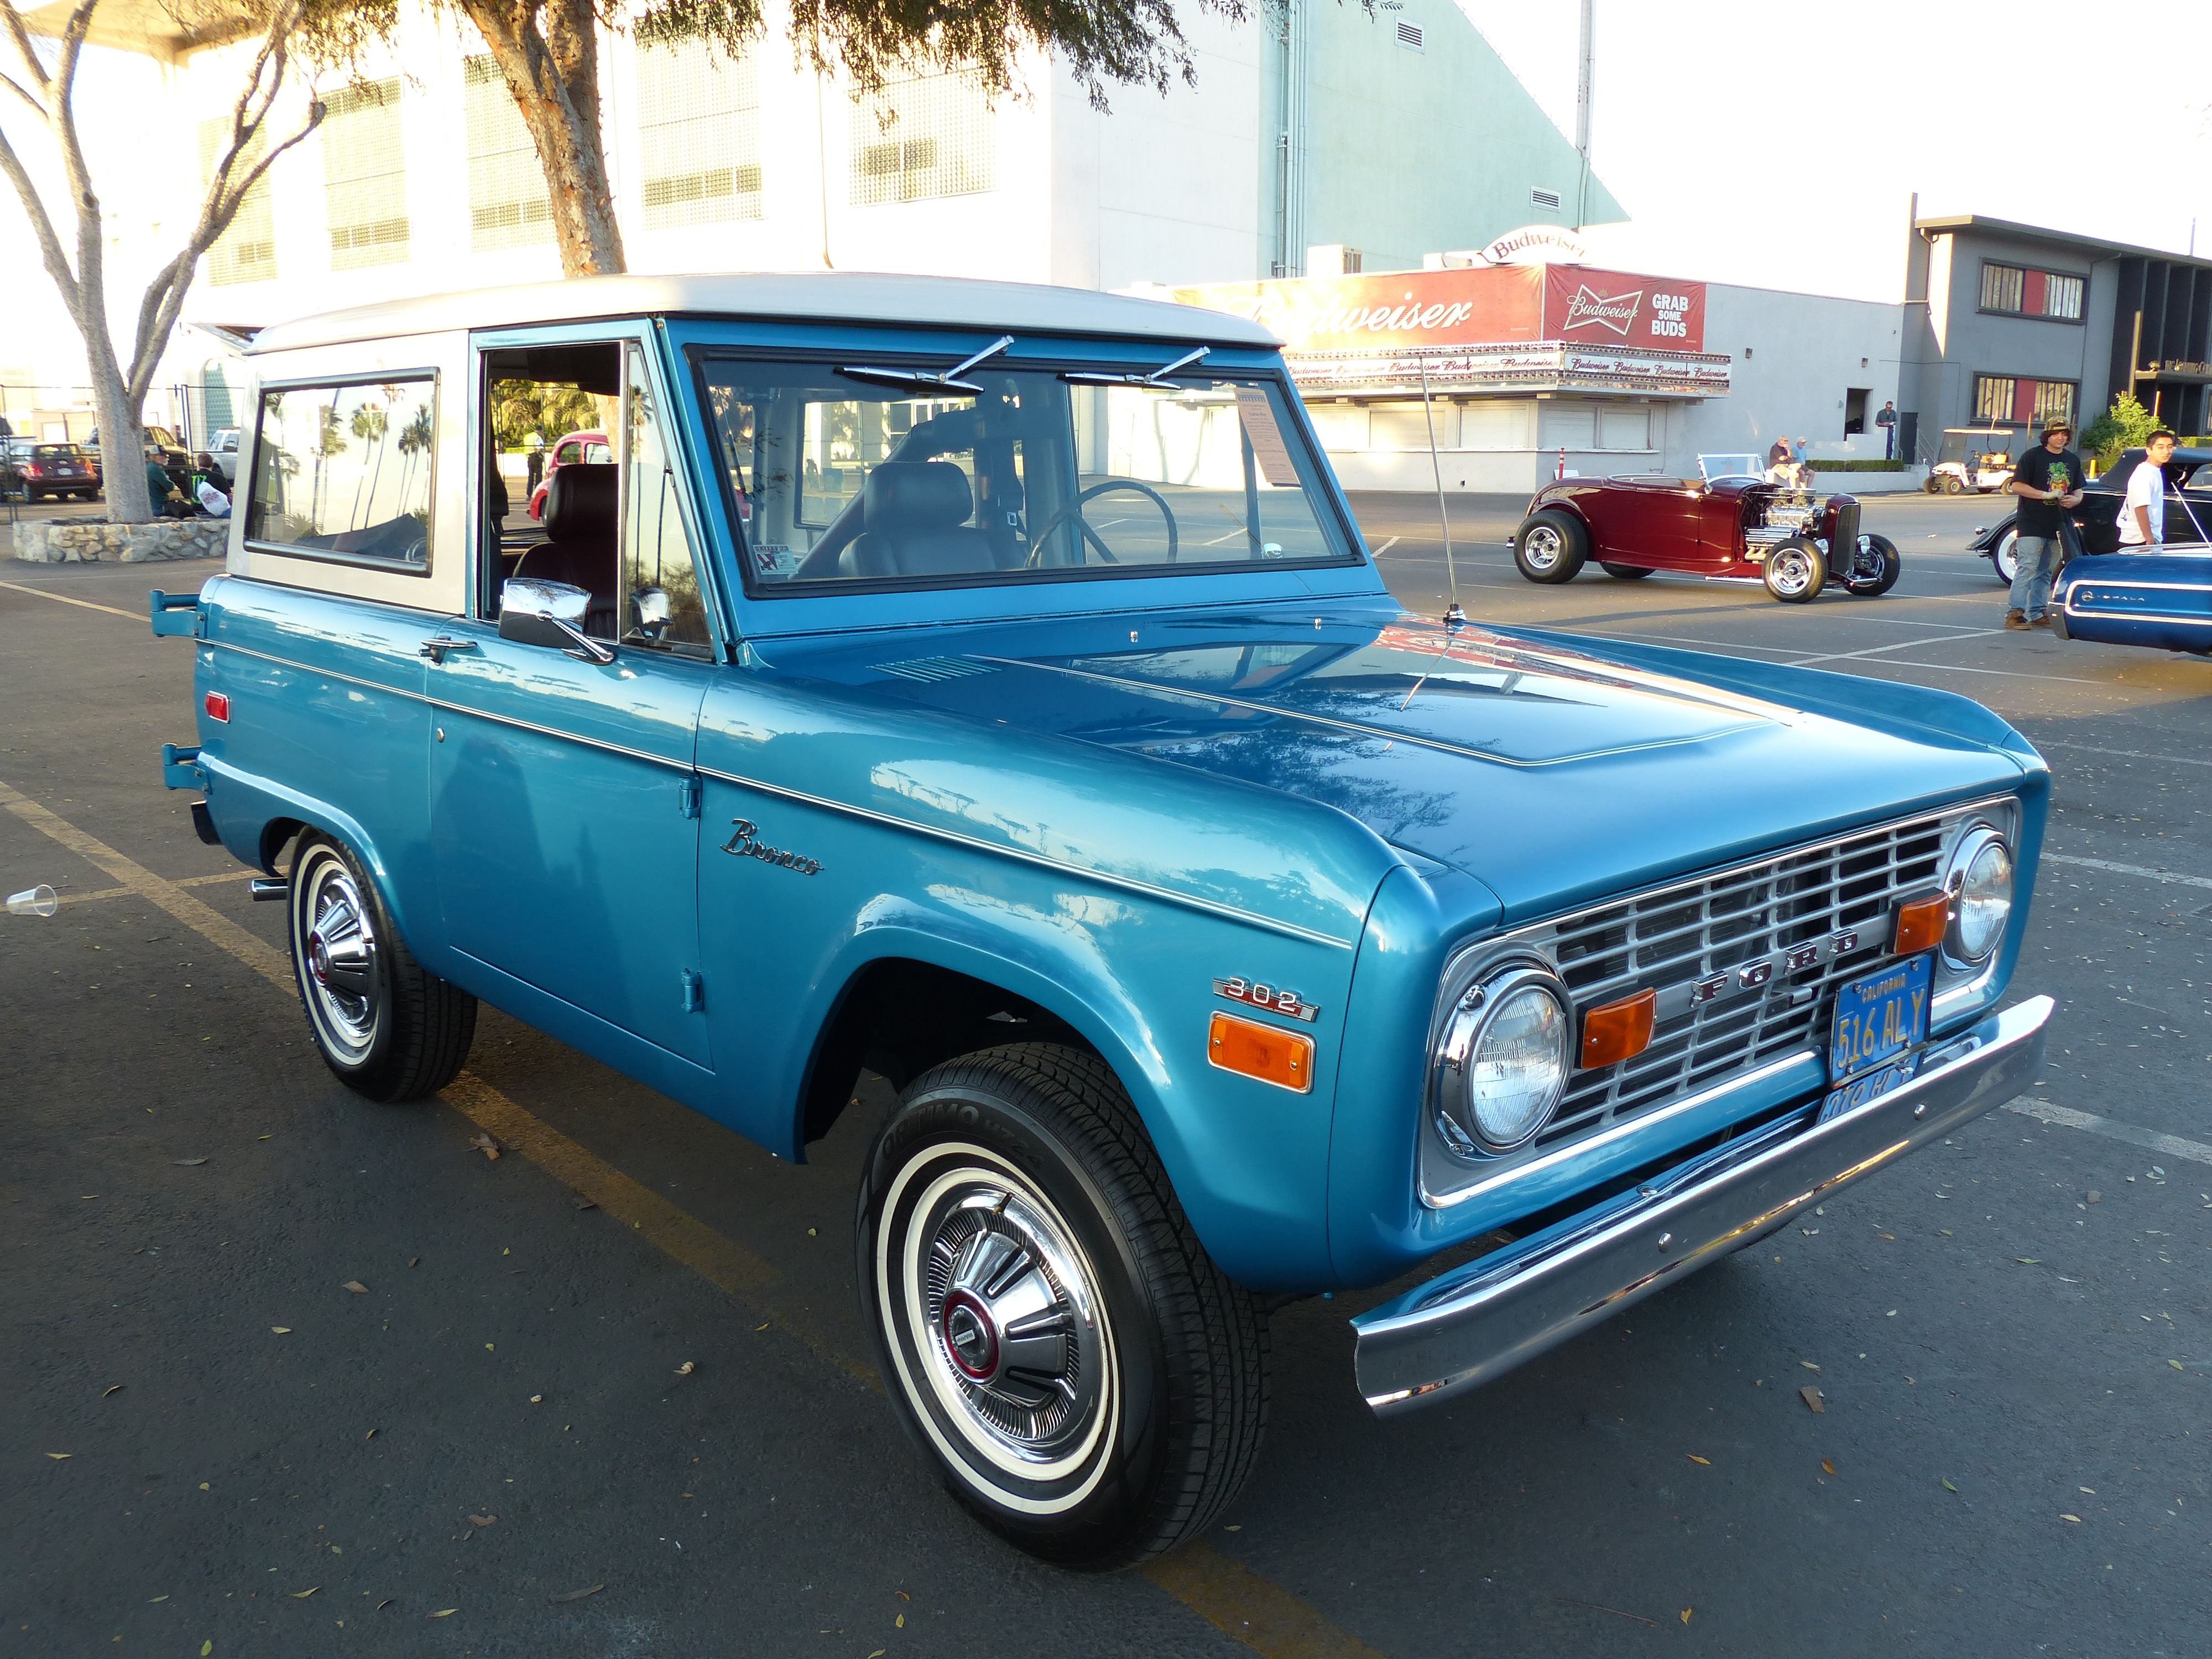 Classic Ford Bronco Suv The Only Good Kind Of Suv Ford Bronco